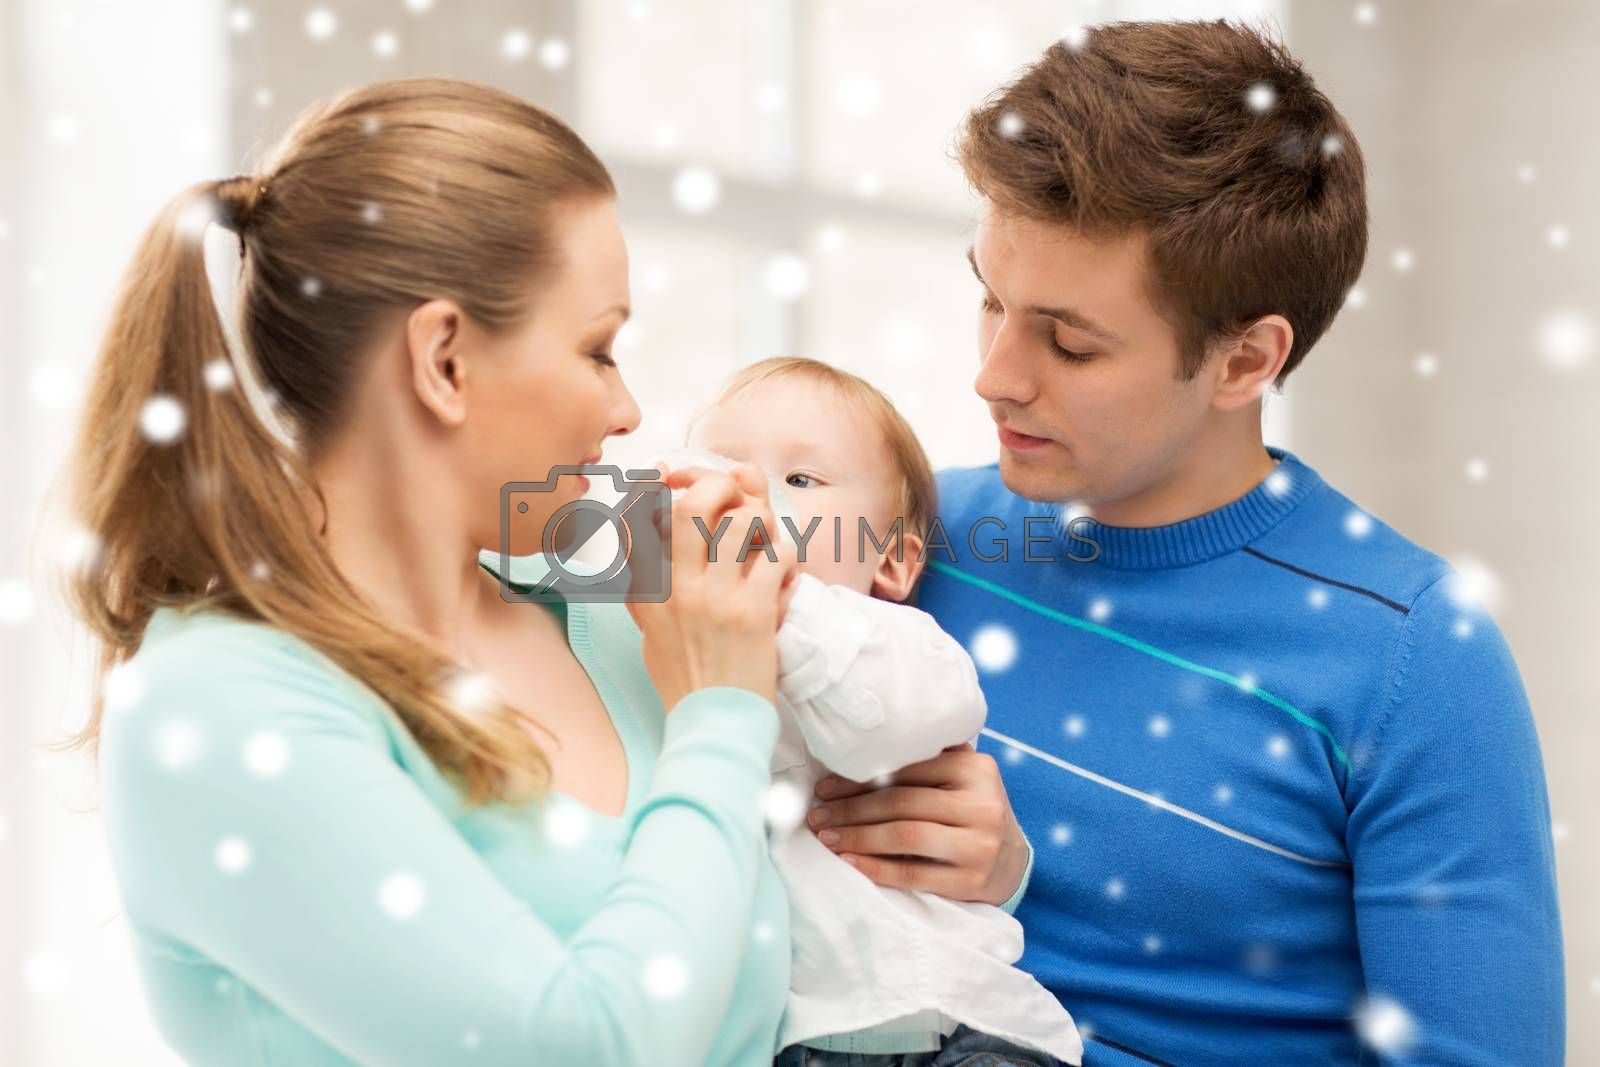 children, christmas, x-mas, love concept - happy family and adorable baby with feeding-bottle